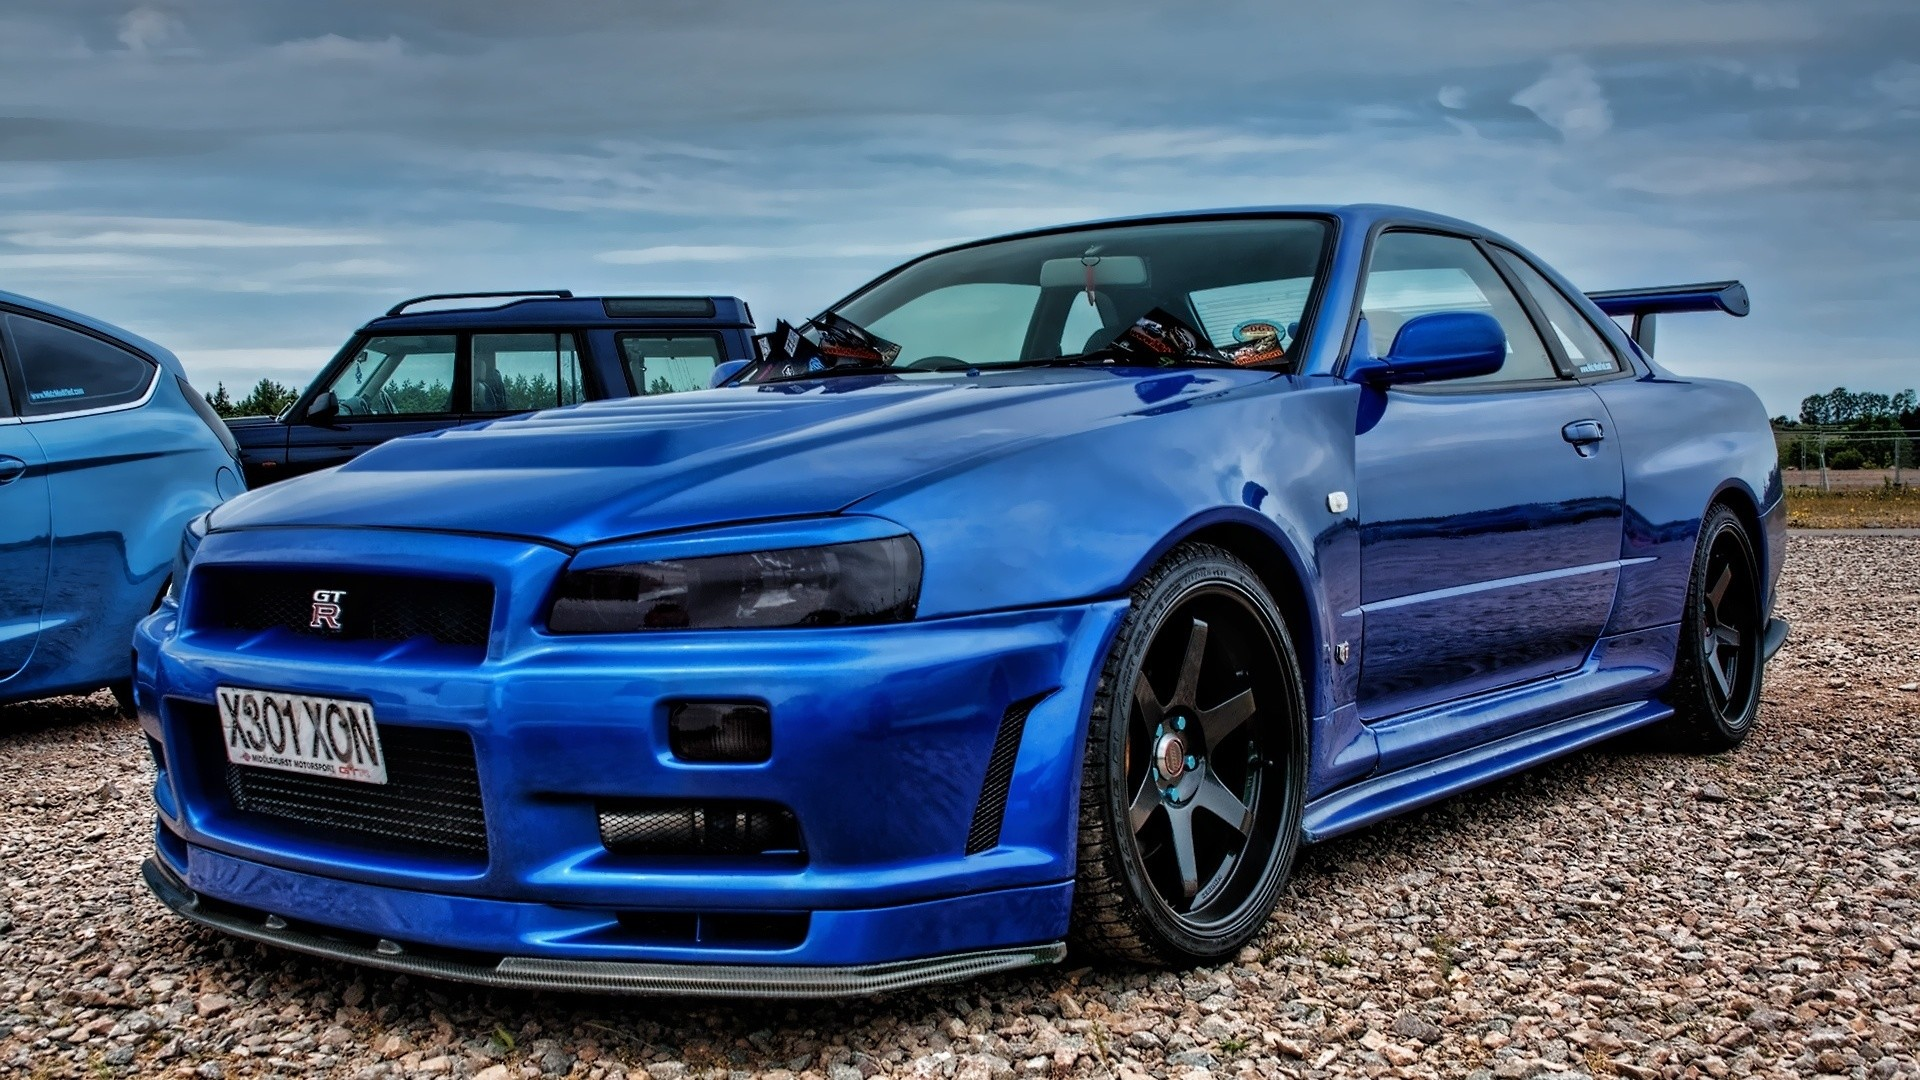 Image Of Nissan Skyline Gtr R34 Blue 1920x1080 Download Hd Wallpaper Wallpapertip